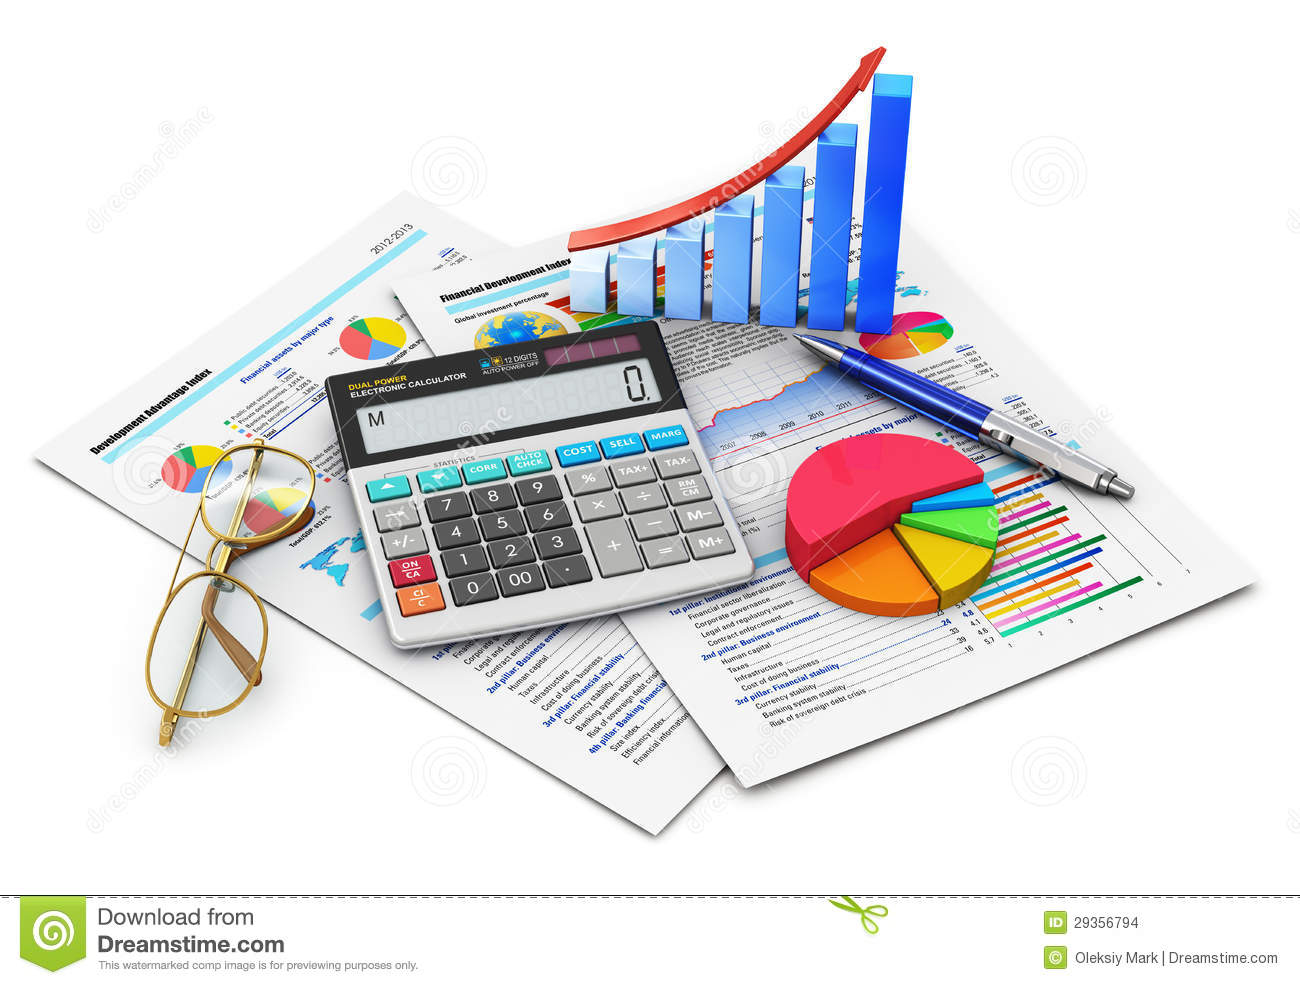 aaccounting cycle Test your knowledge of the accounting cycle with multiple choice questions and quizzes.